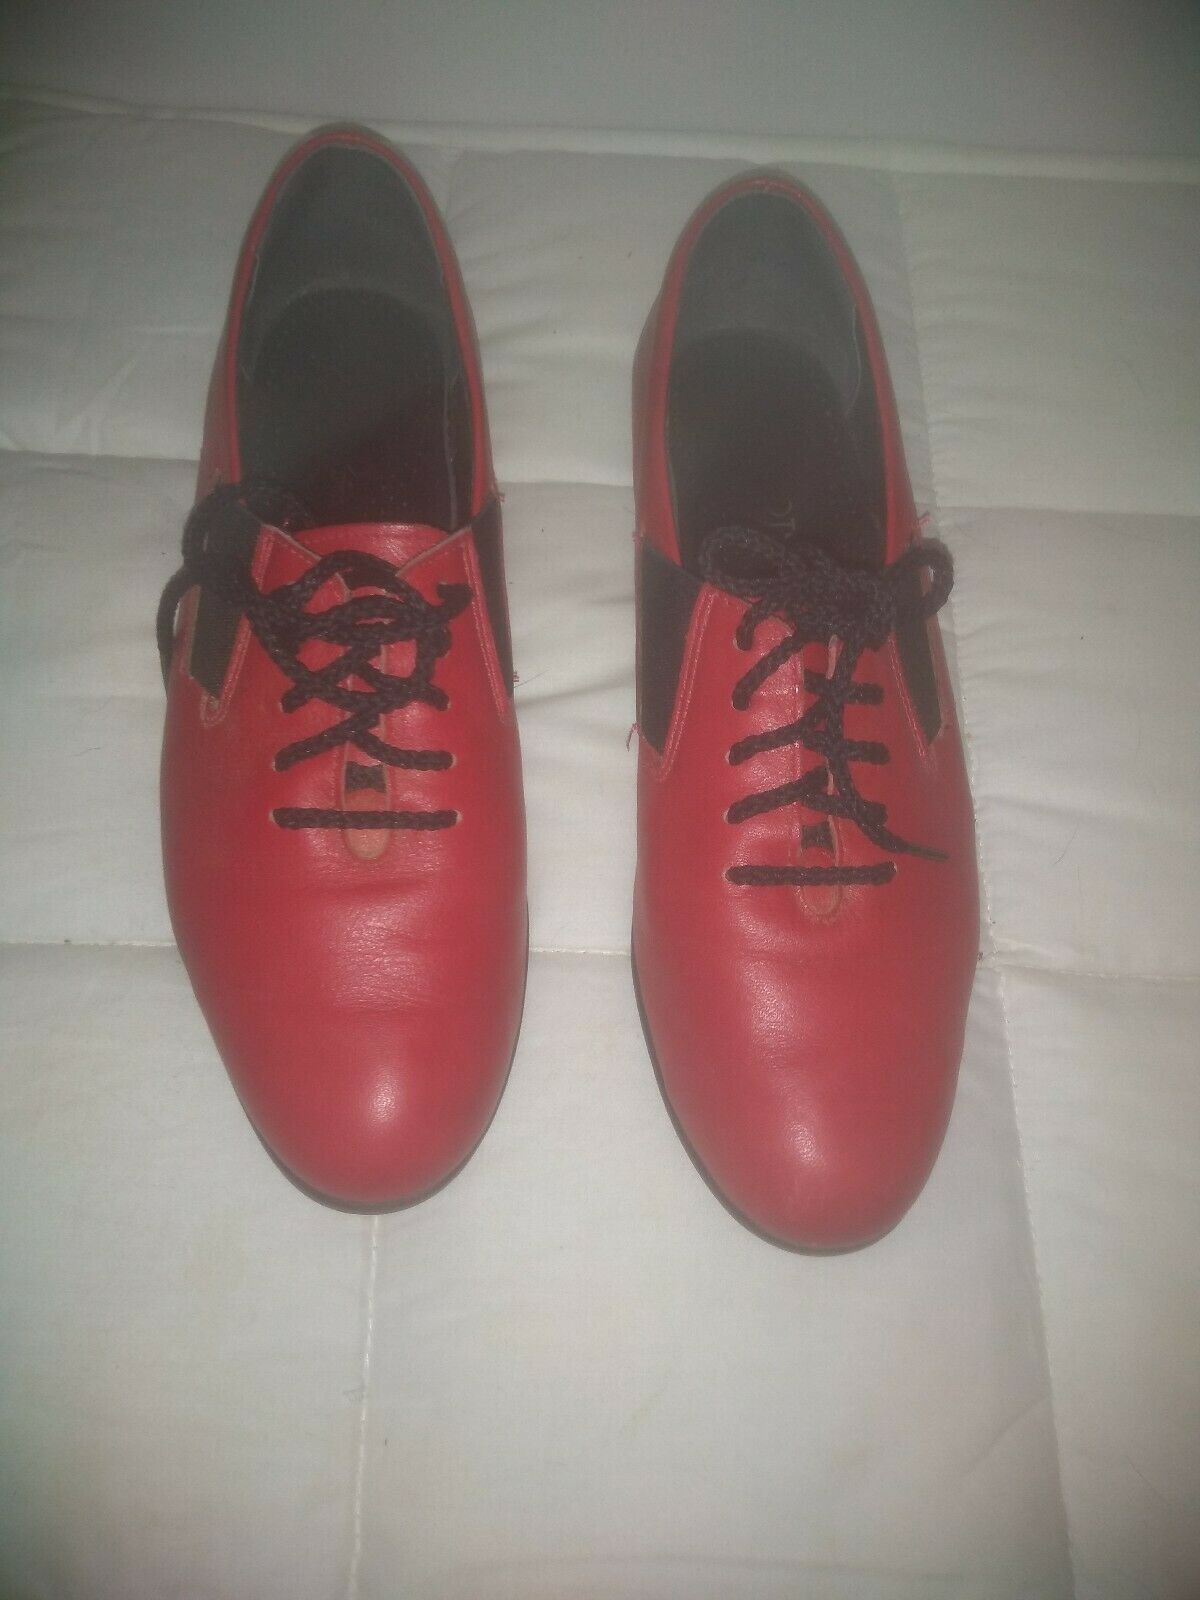 Women's SOFTSPOTS Red Leather Oxford Sneakers Comfort Walking Shoes SIZE 6B